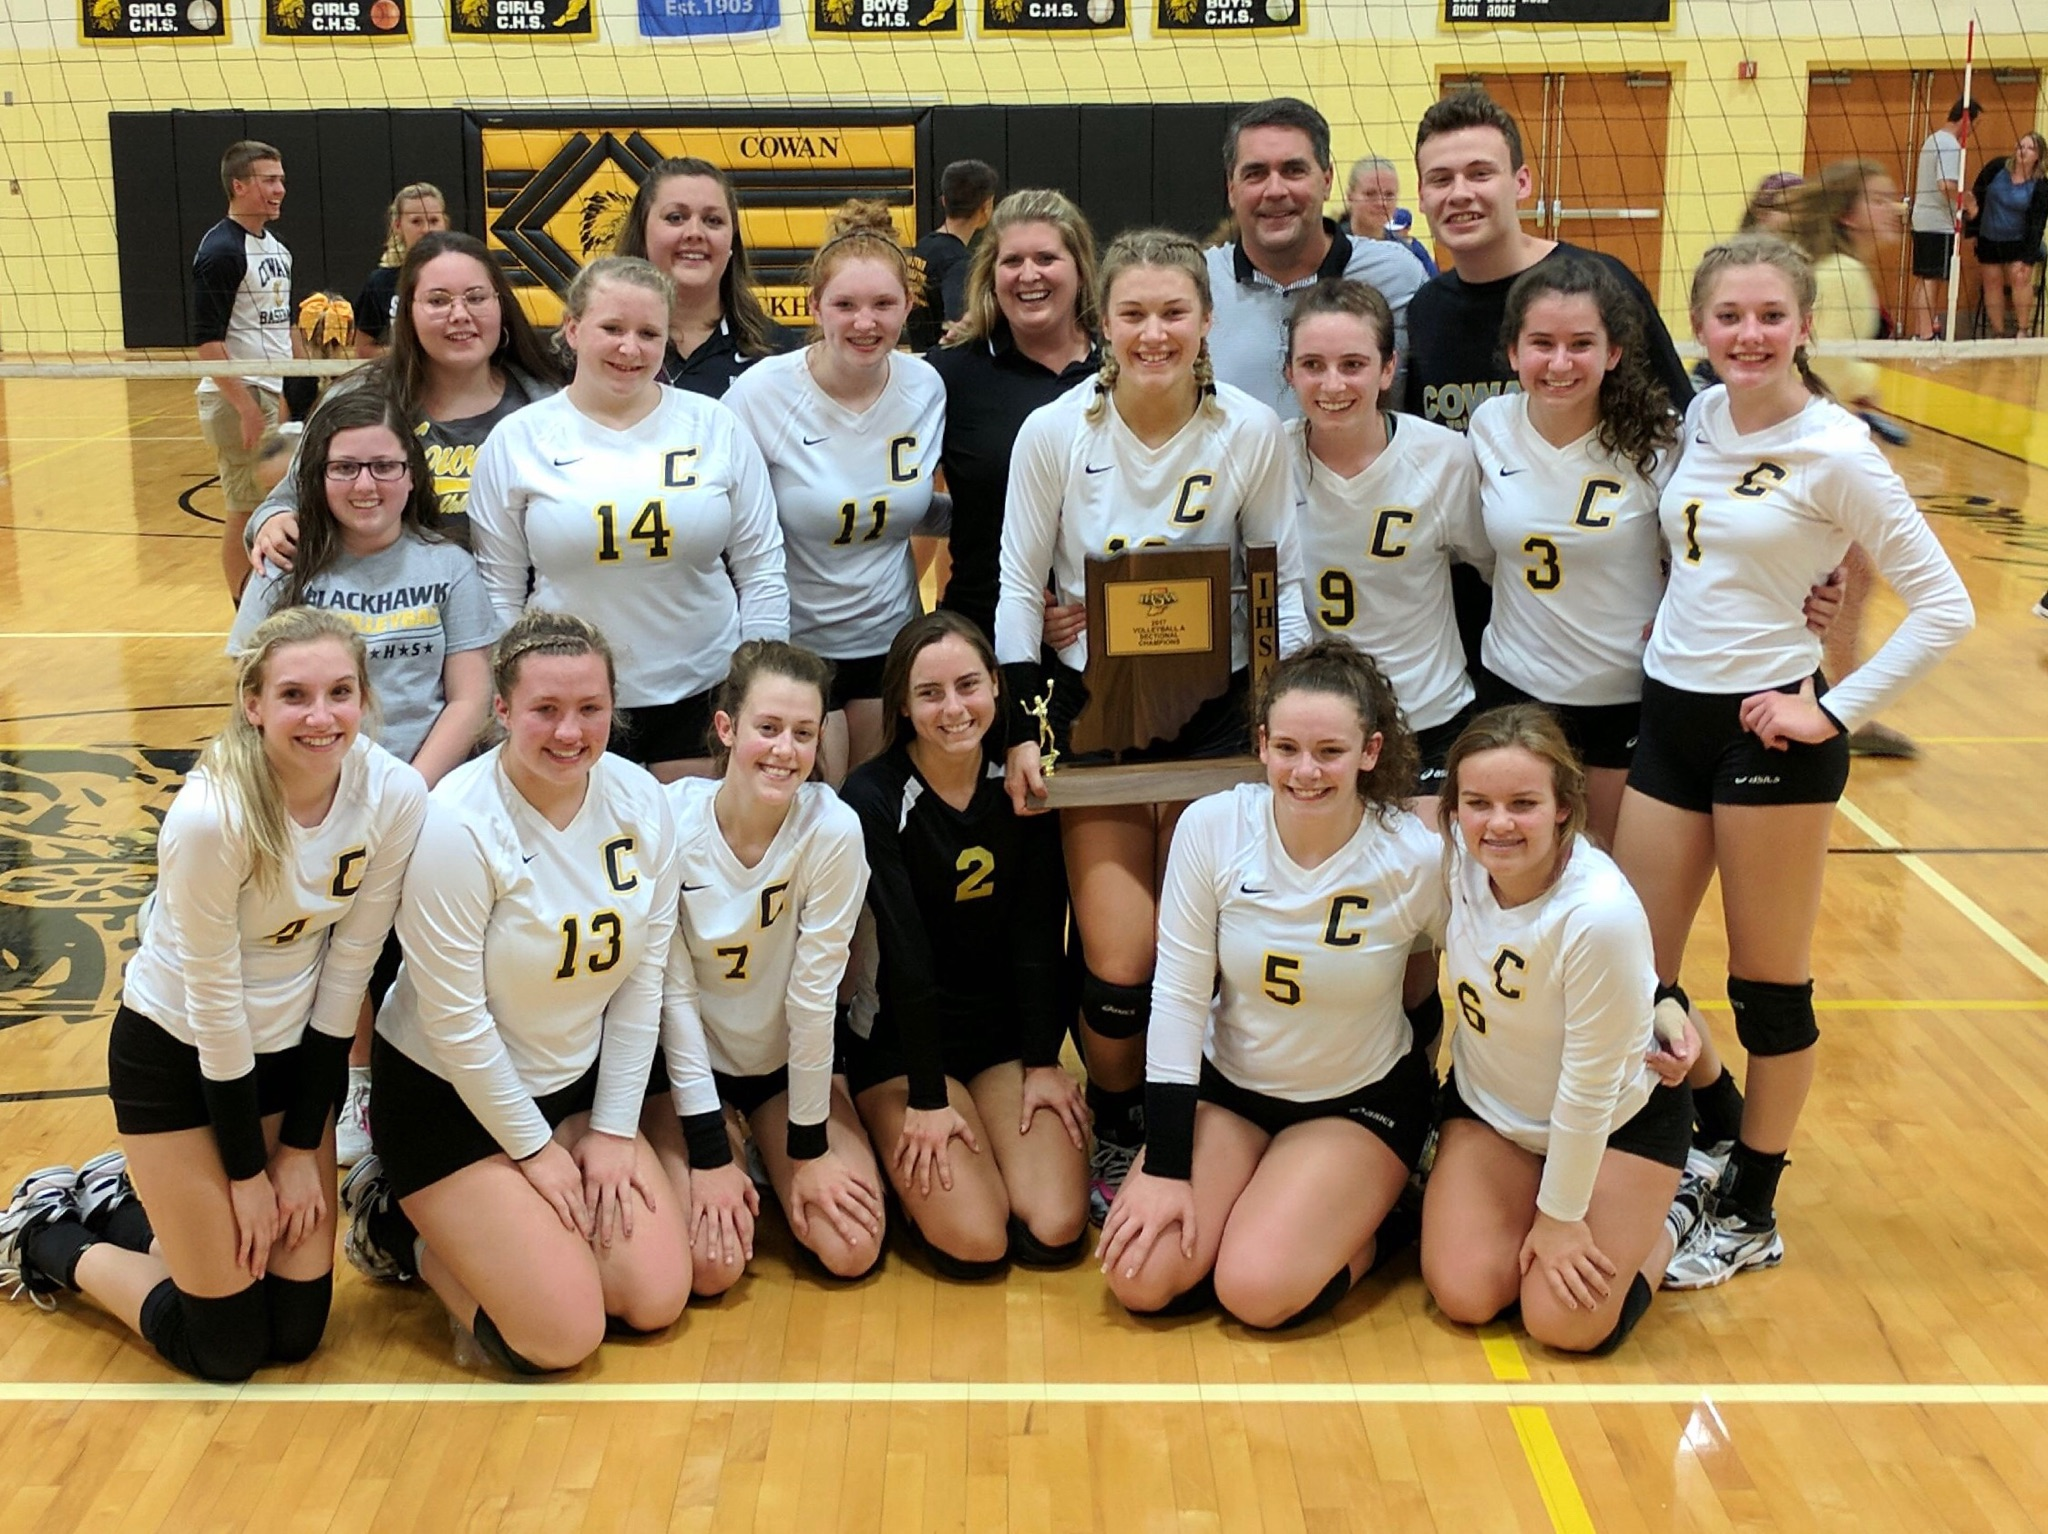 Cowan Wins Volleyball Sectionals